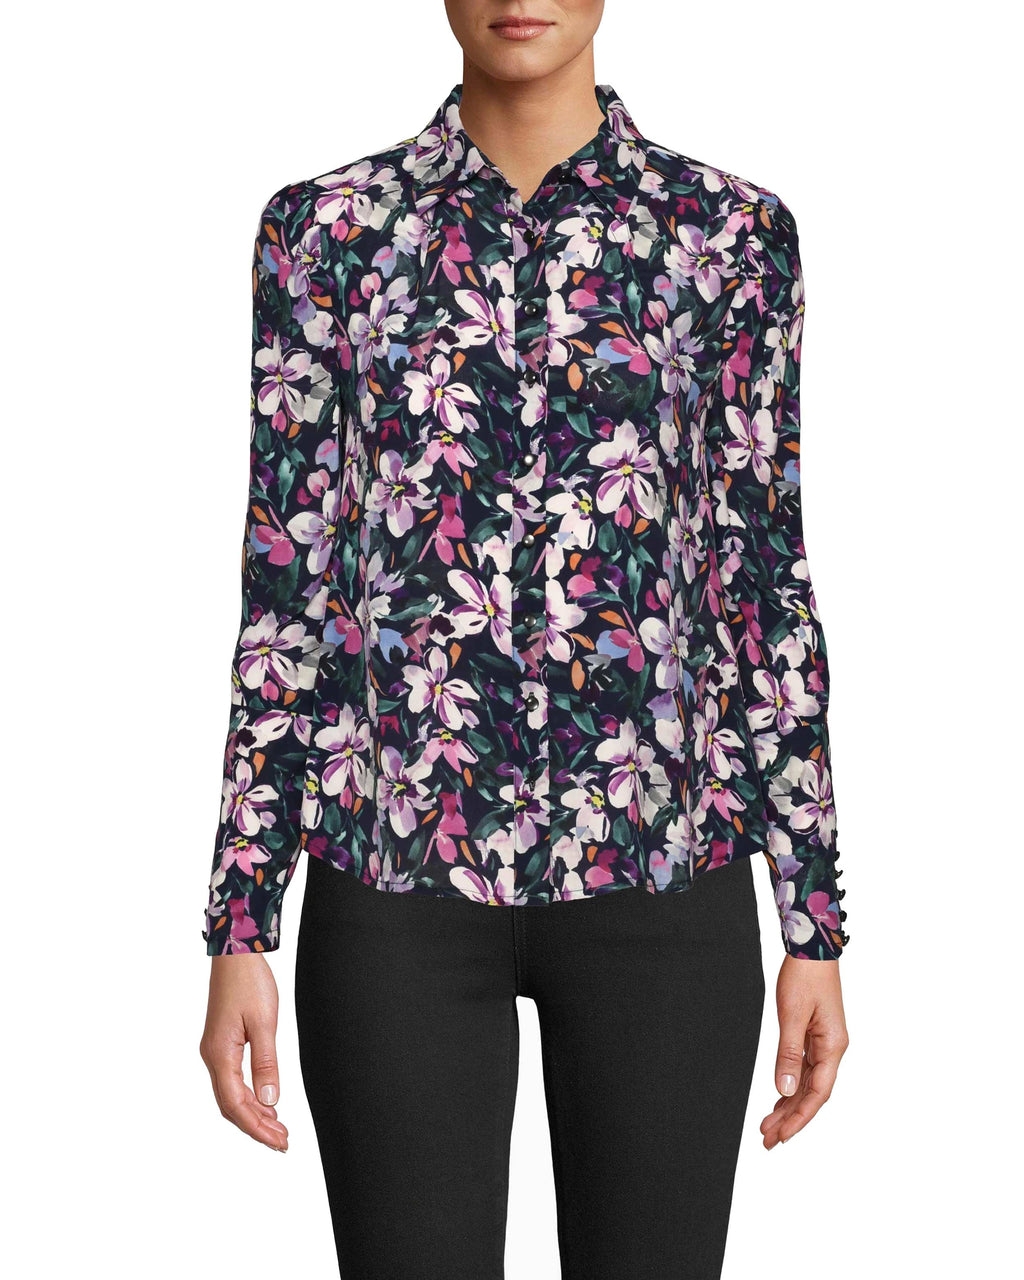 CT18624 - MIDNIGHT FLORAL BOYFRIEND BLOUSE - tops - shirts - We love our midnight floral boyfriend blouse for it's classic silhouette and bold print. This upgraded button down has a slight puff sleeve for a feminine detail. Crafted from a lightweight silk blend, this top was made for winter layering. Add 1 line break Stylist tip: Wear under a blazer for more formal occasions and solo for a more casual affair.